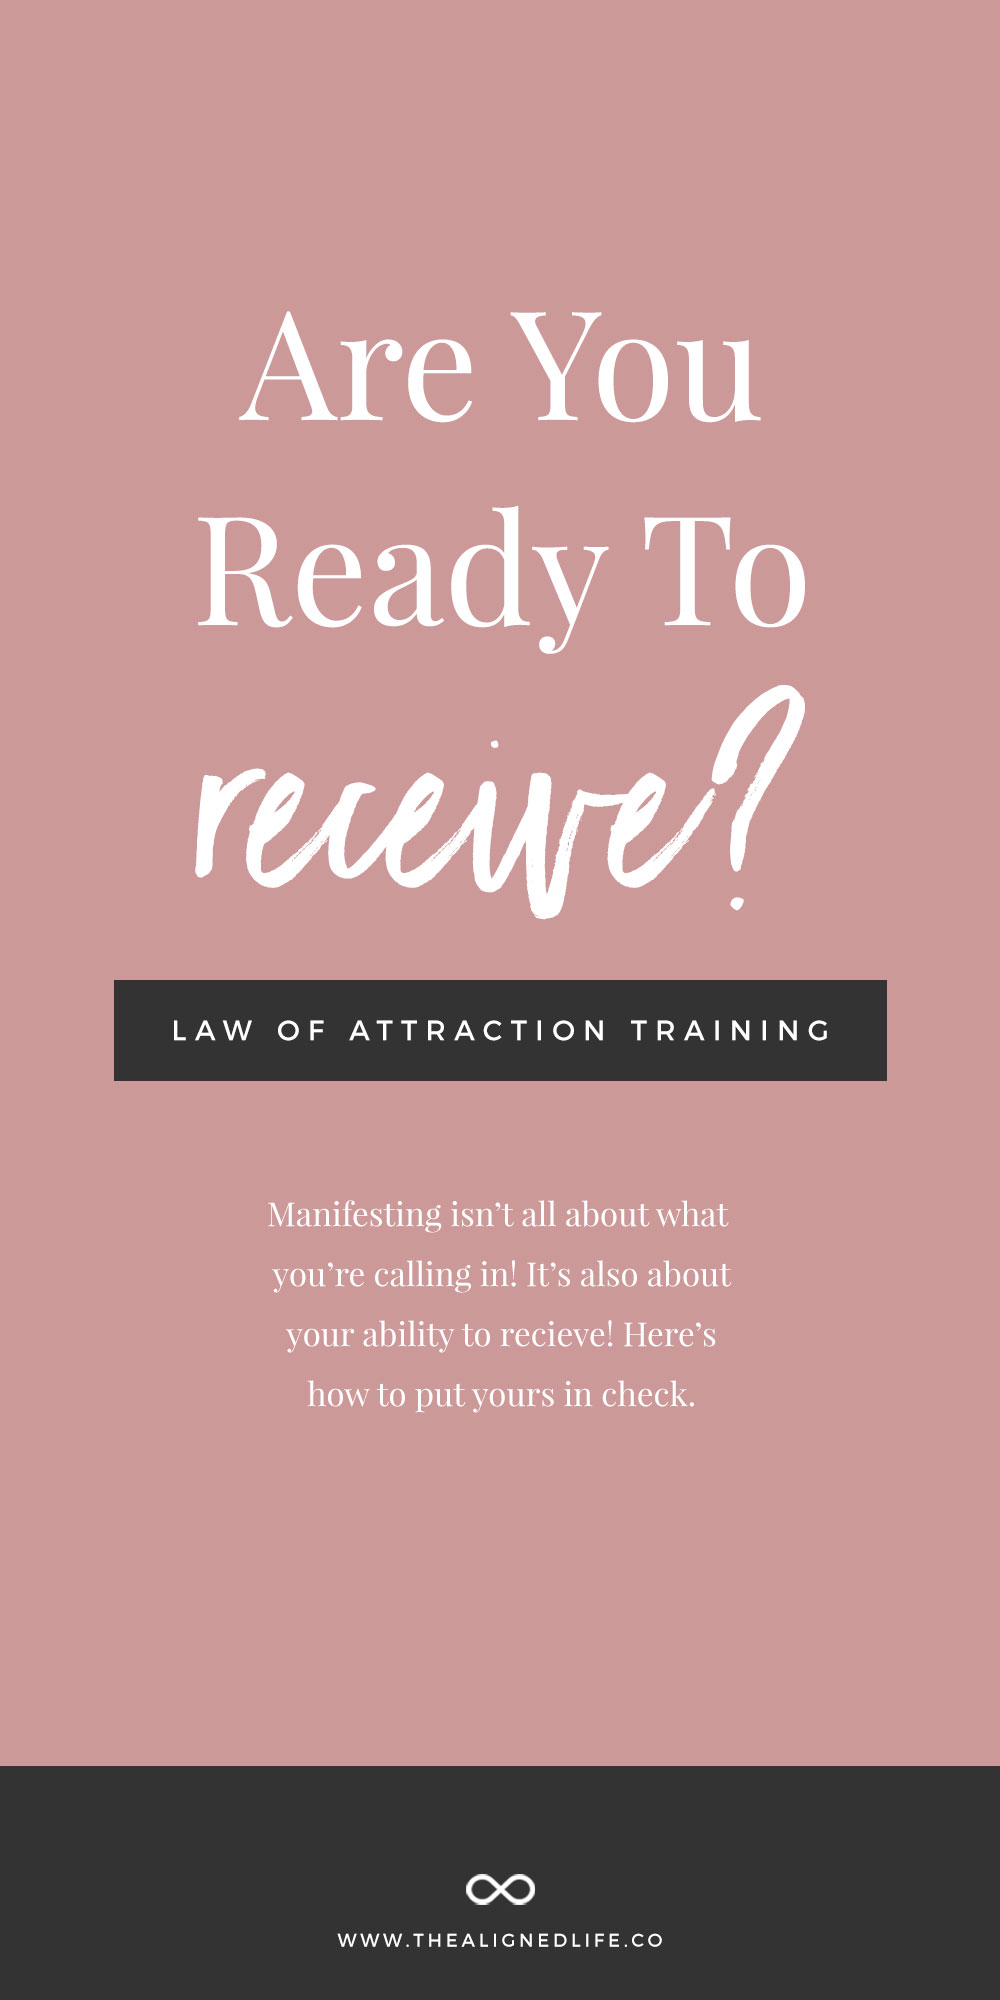 Are You Truly Ready To Receive?